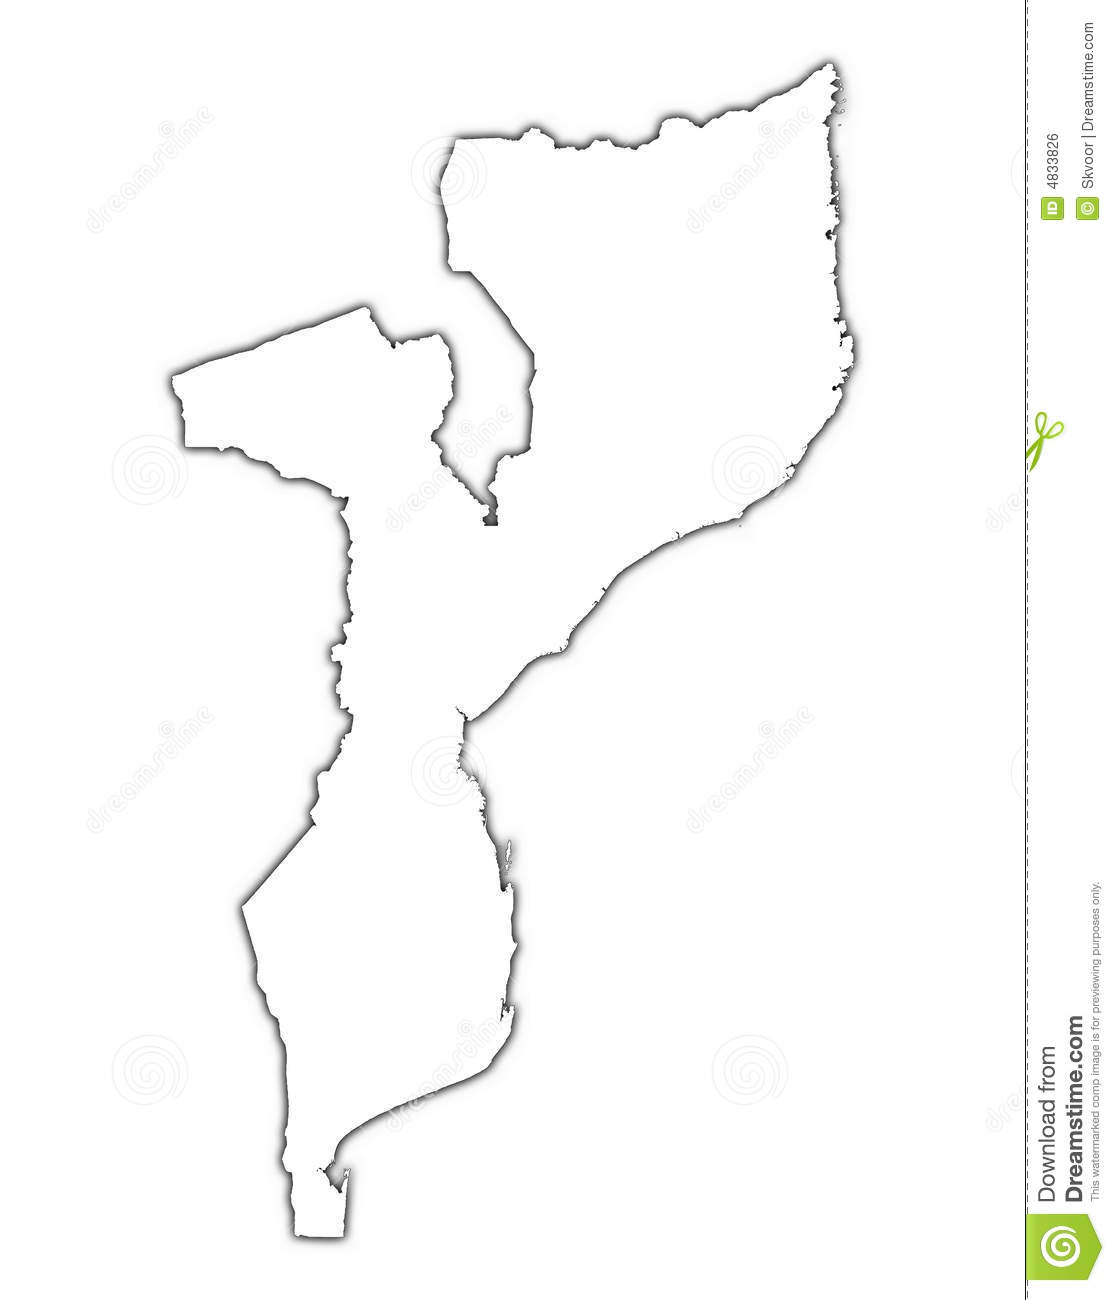 Mozambique Outline Map Stock Illustration Image Of